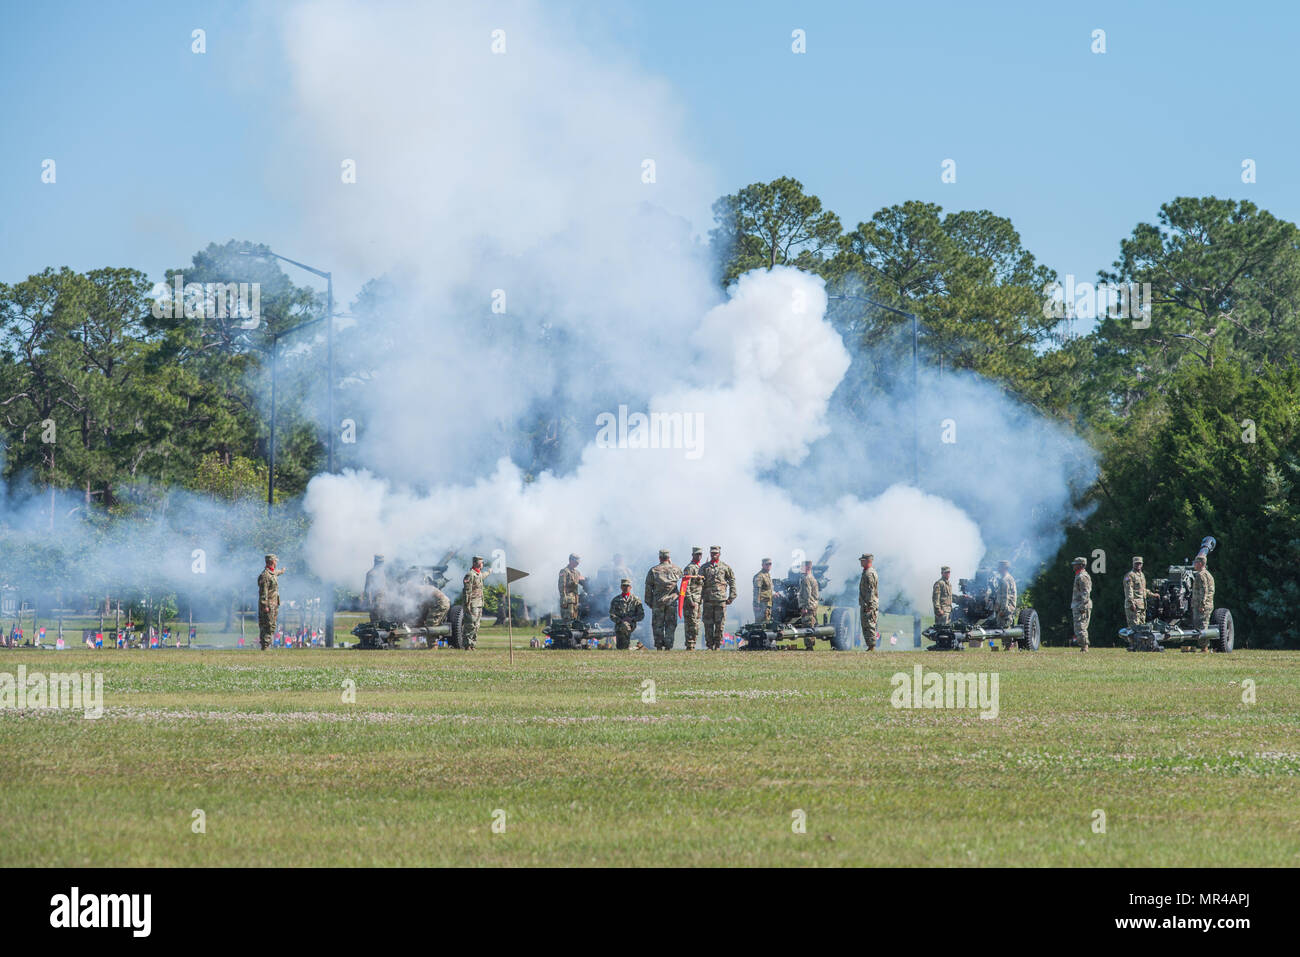 Soldiers of 3rd Infantry Division Artillery conduct a cannon salute during the 3rd Infantry Division change of command ceremony. The 3rd Infantry Division change of command ceremony was held on Cotrell Field at Fort Stewart, GA, May 8, 2017. (U.S. Army Photo by Lt. Col. Brian J. Fickel) Stock Photo